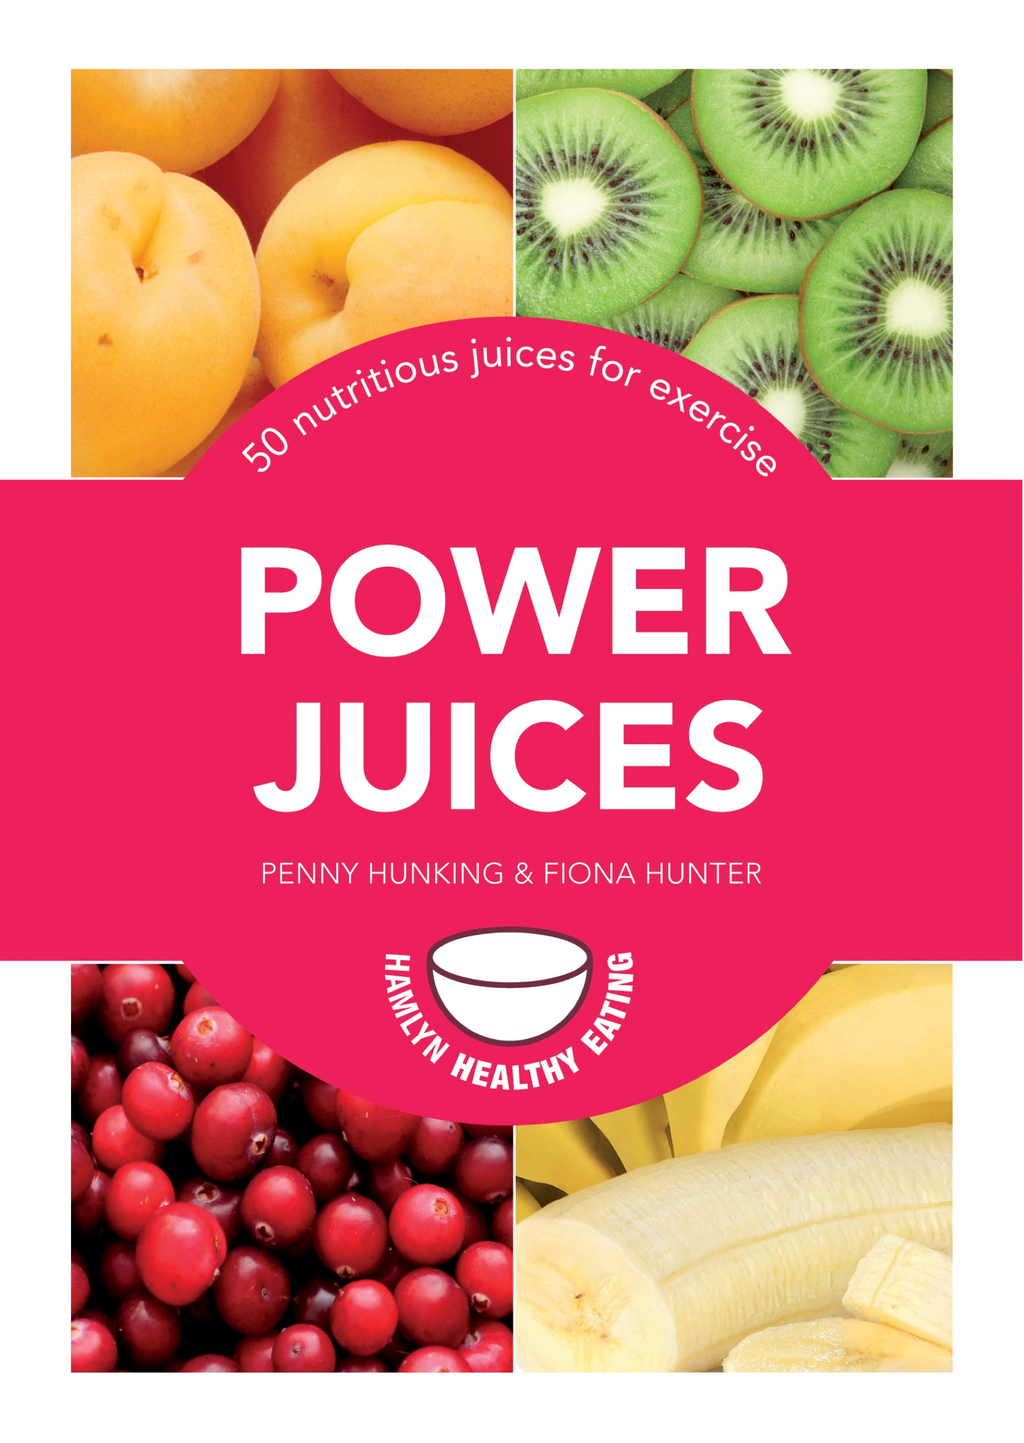 Power Juices 50 nutritious juices for exercise